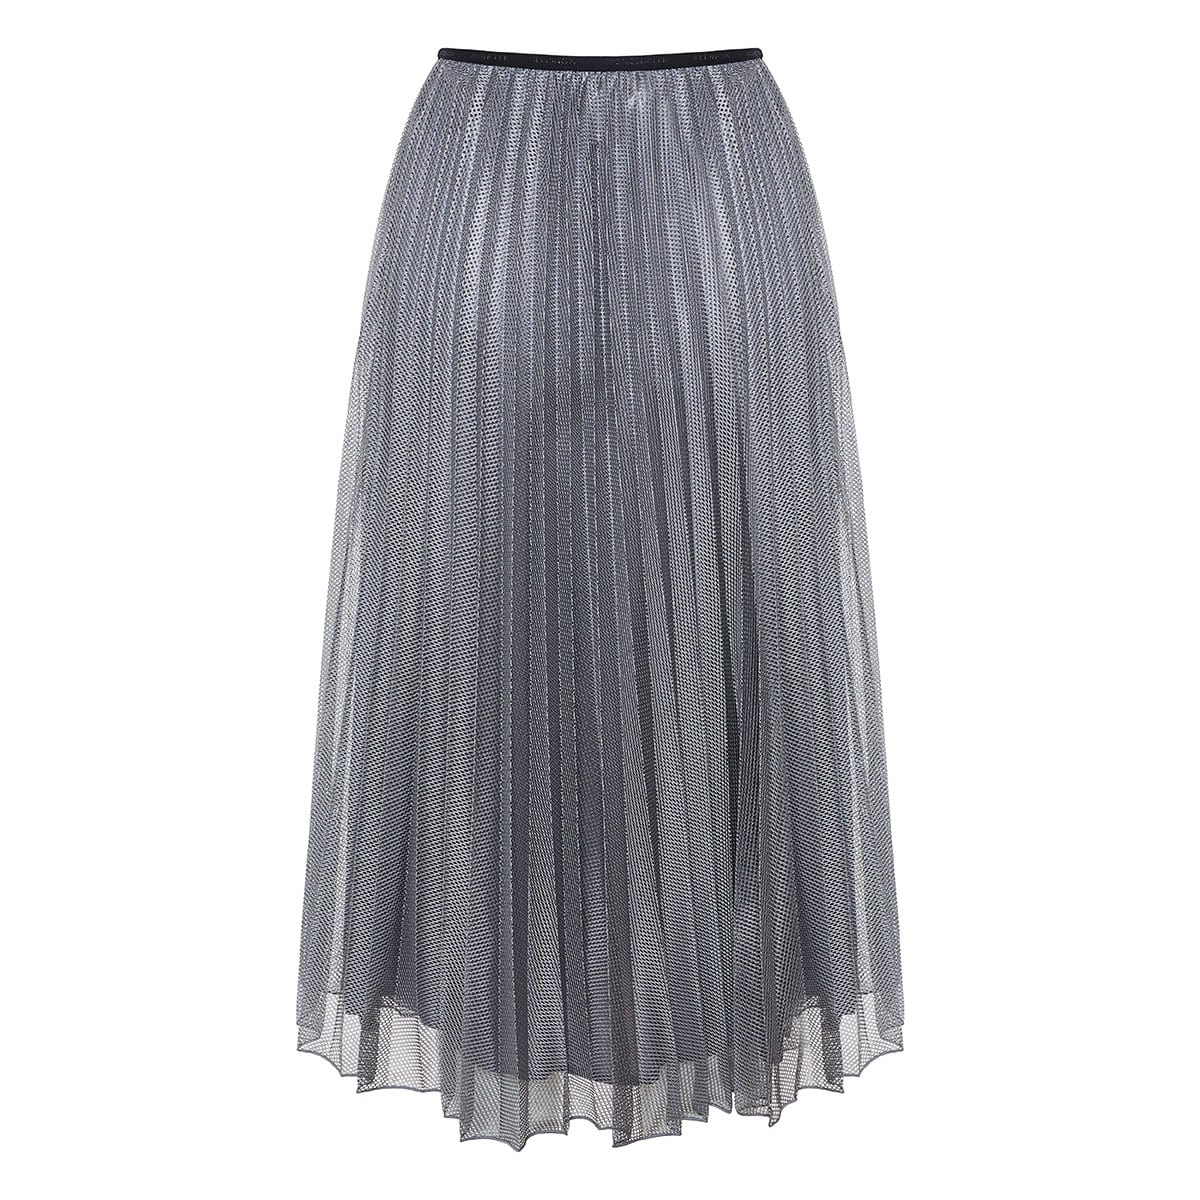 Metallic mesh pleated midi skirt